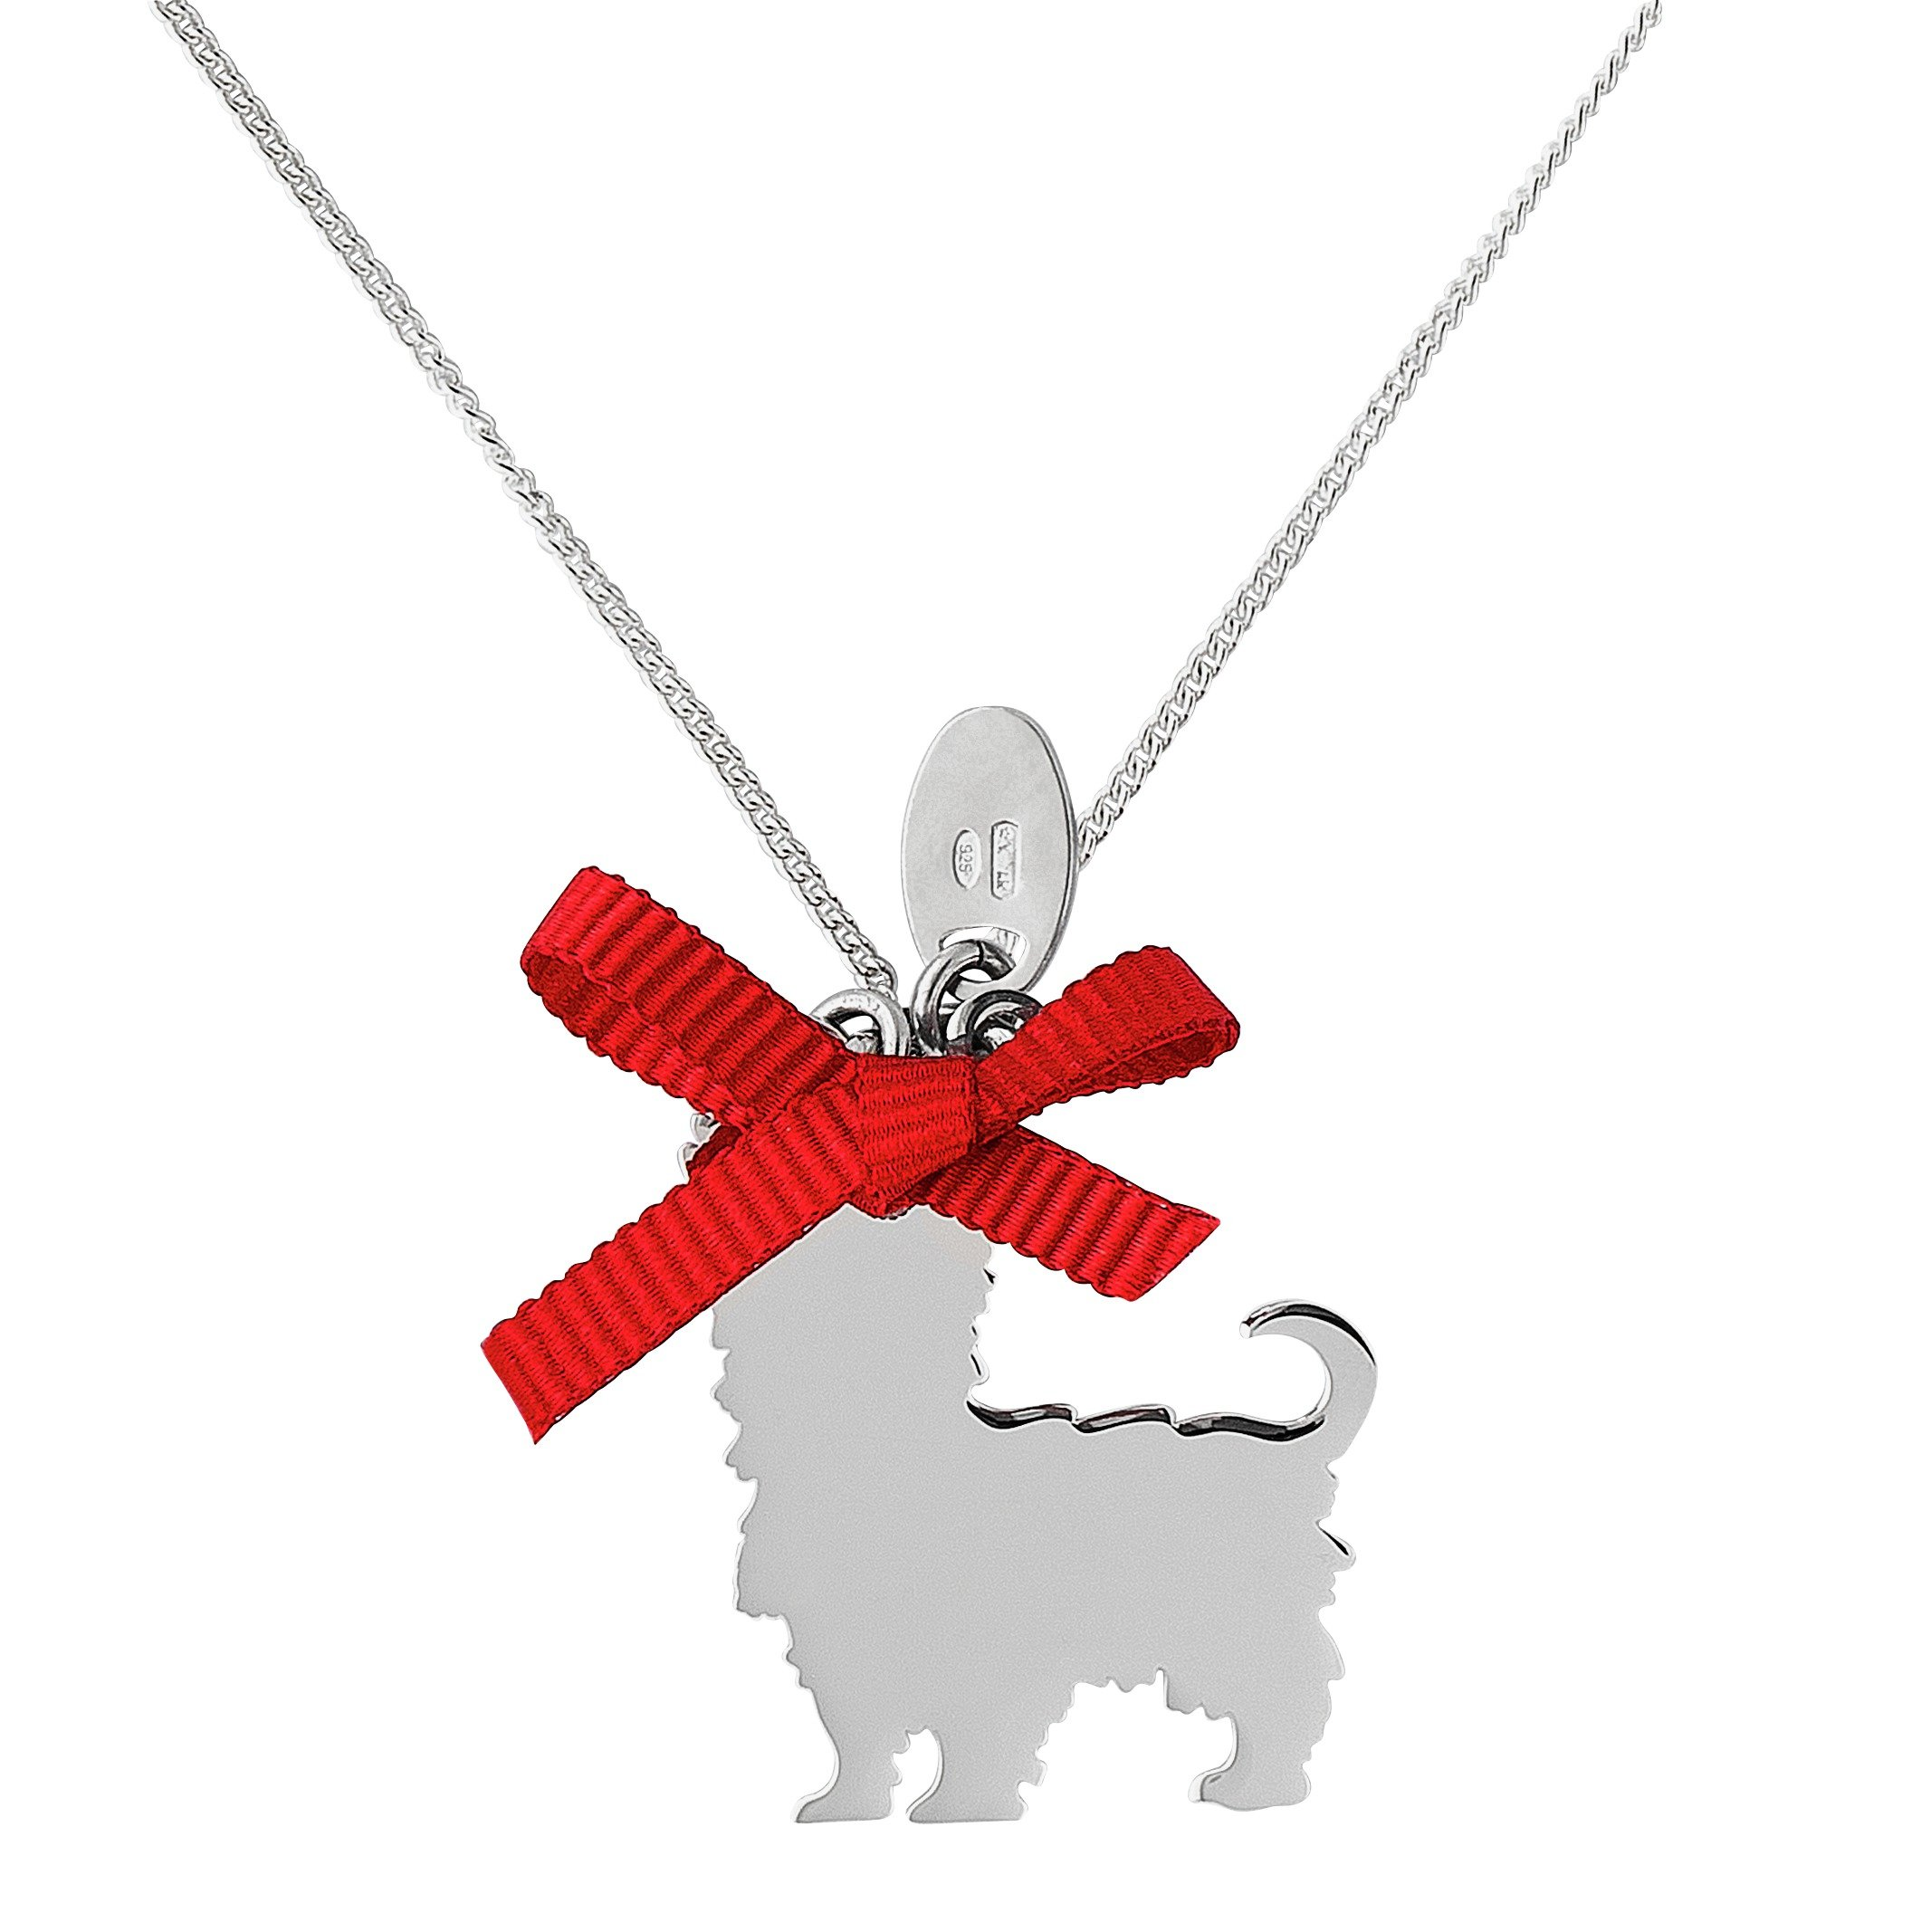 Image of Revere Sterling Silver Doggy Pendant